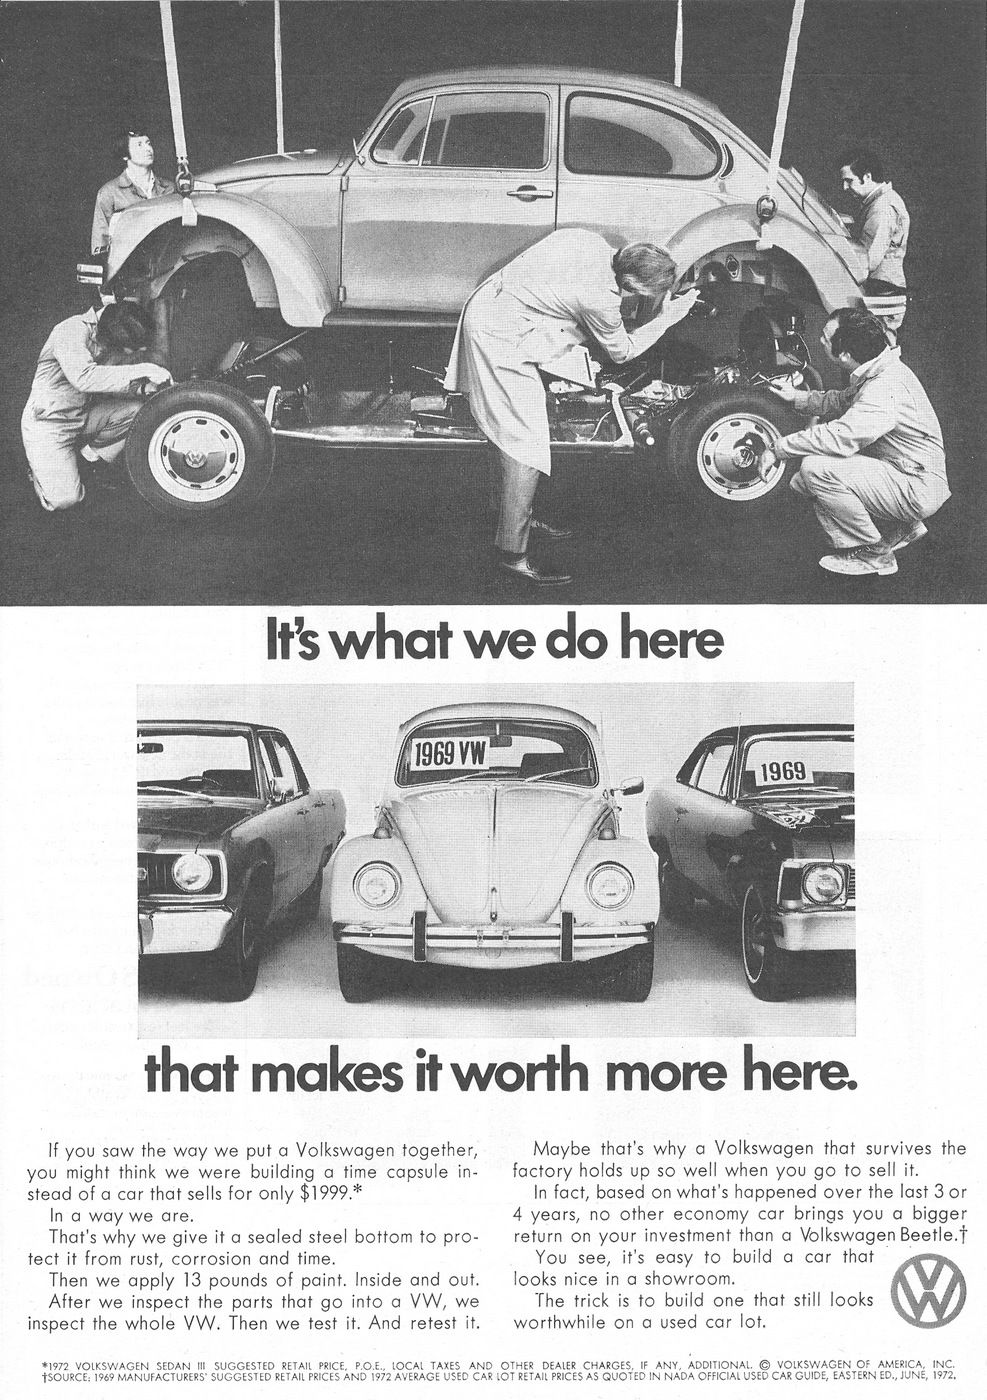 Volkswagen, VW Beetle 1972 Ad Picture | Retro Car Ads | Pinterest ...